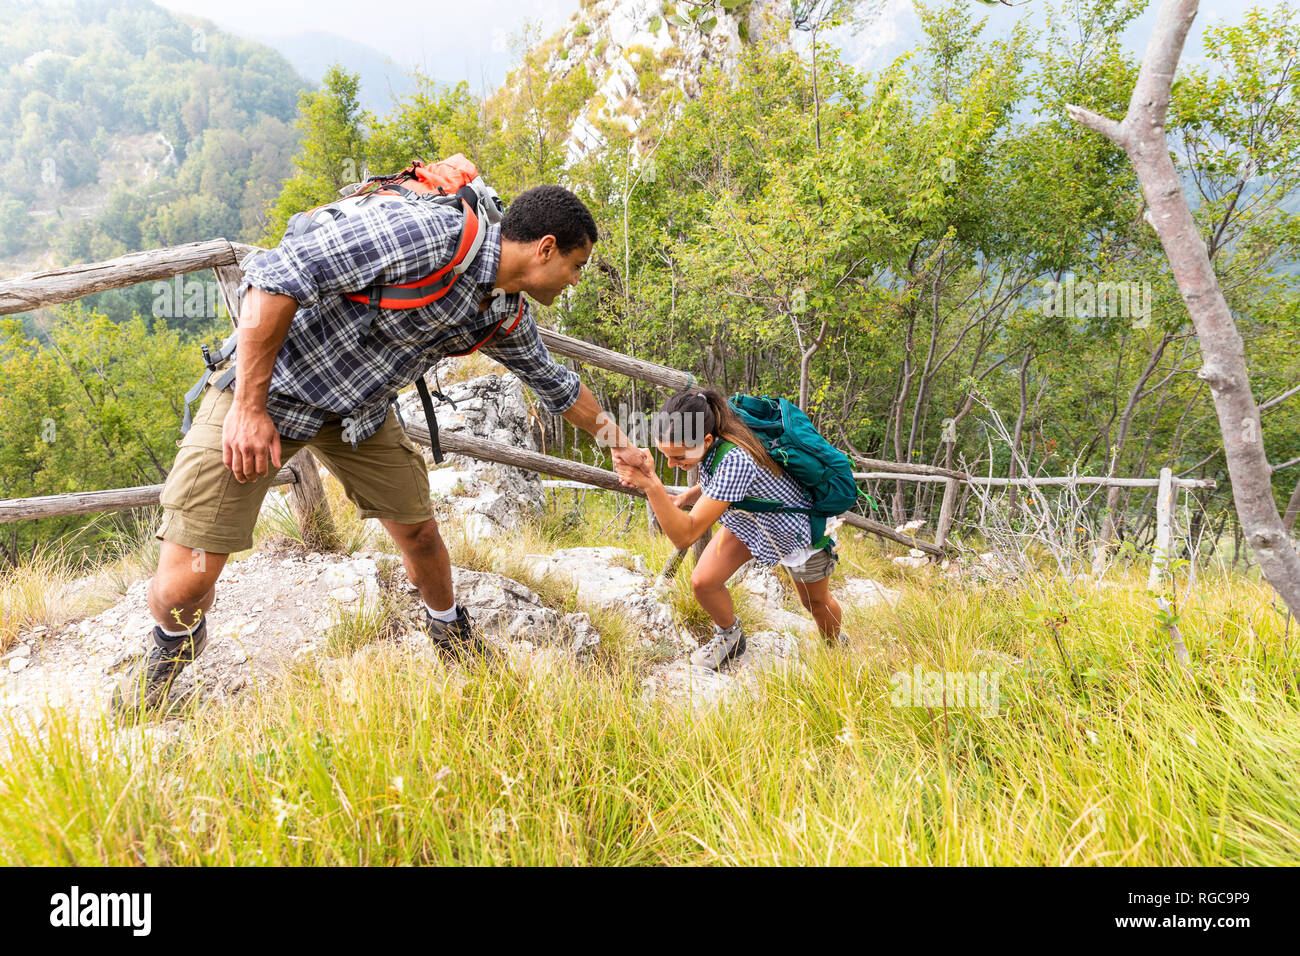 Italy, Massa, man helping a young woman to climb a step while hiking in the Alpi Apuane mountains Stock Photo